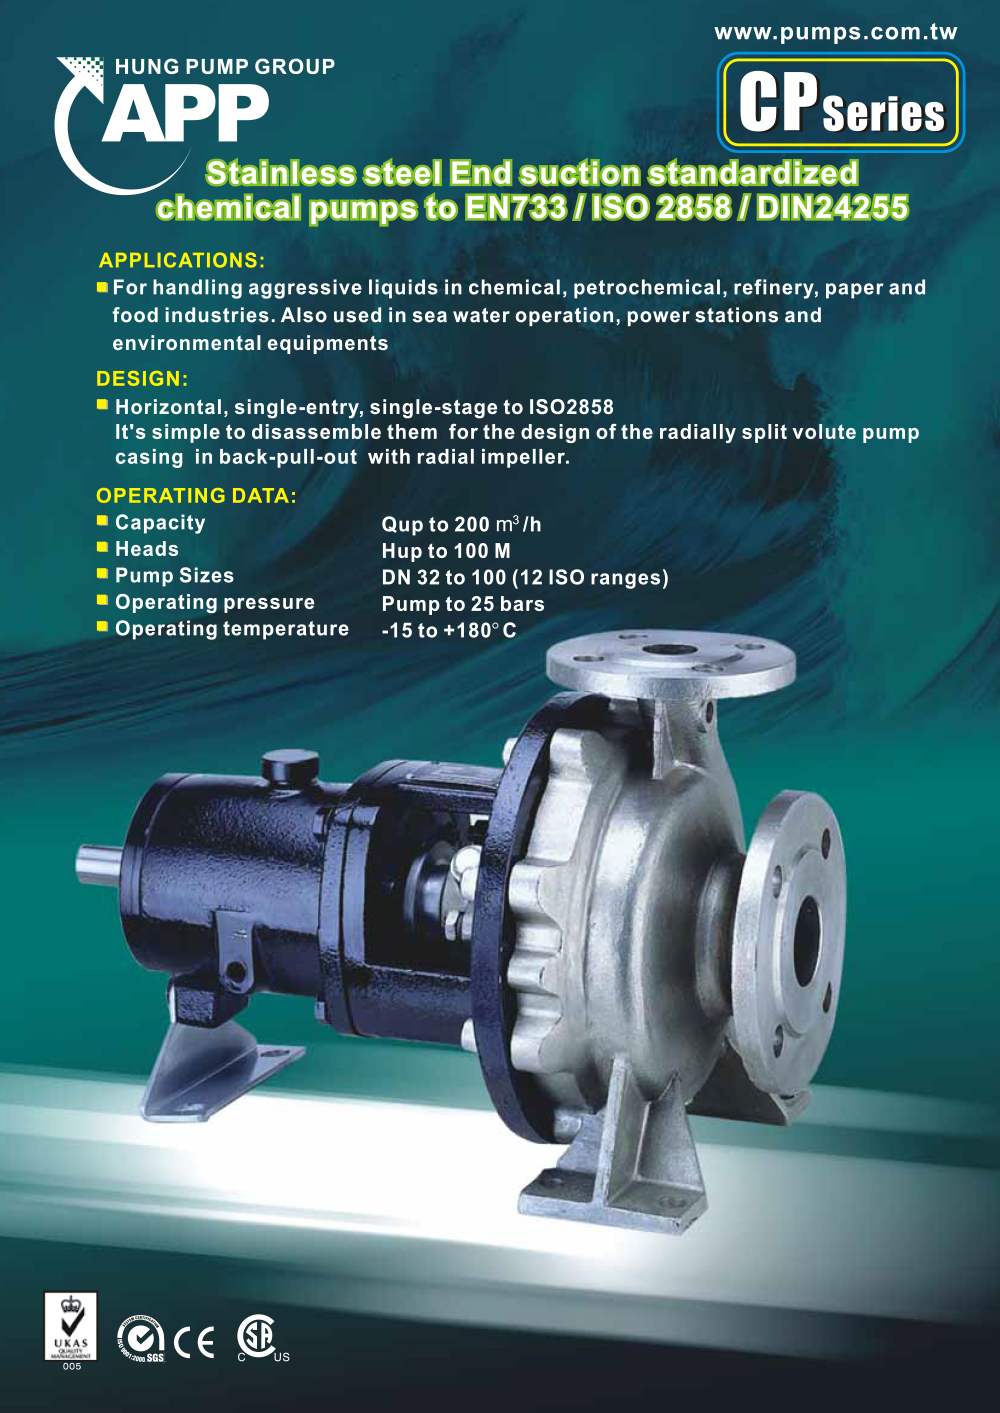 CP CHemical Pump